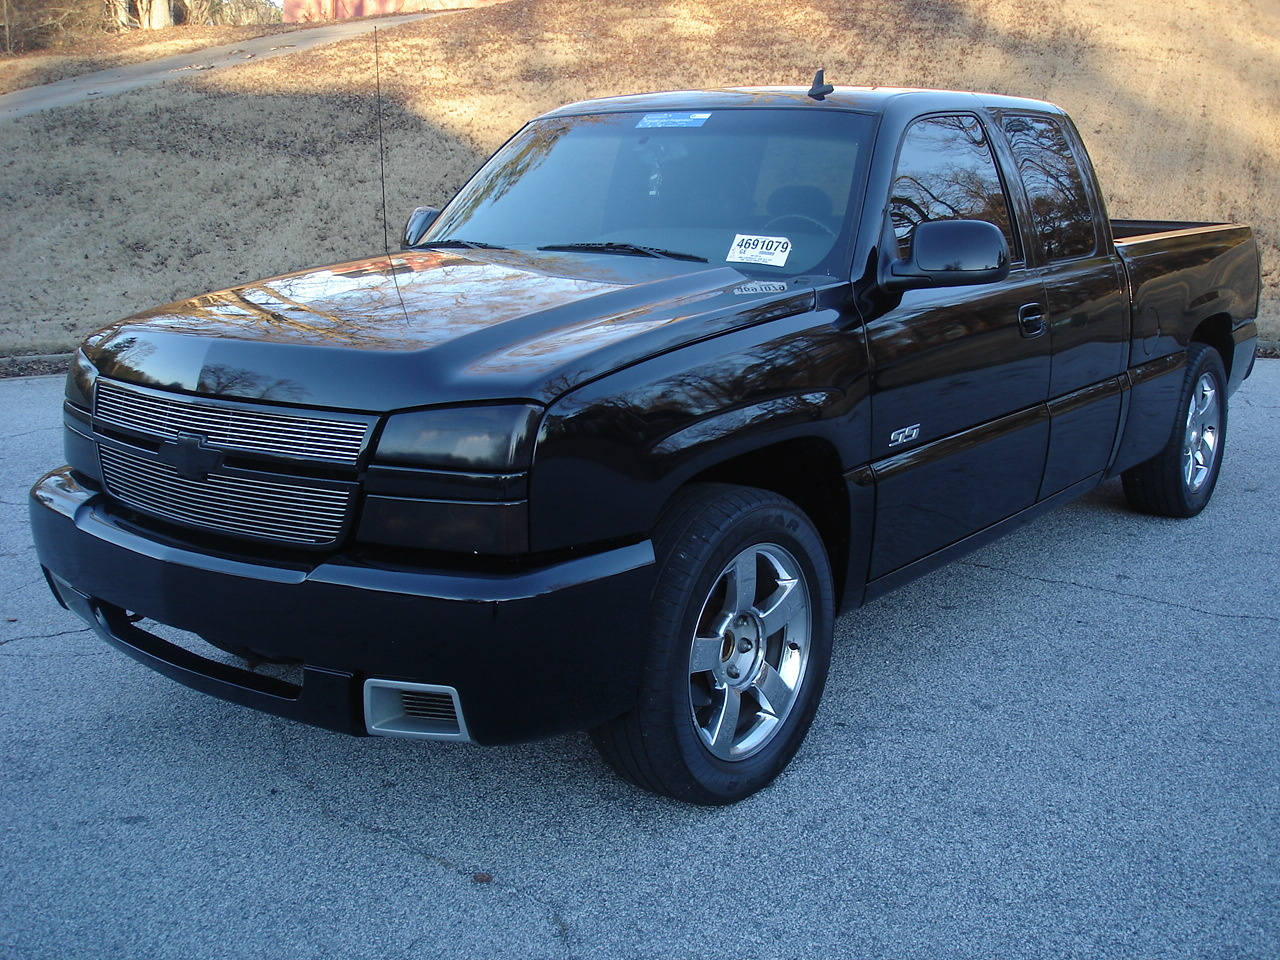 2006 chevrolet silverado 1500 ss specifications cargurus. Black Bedroom Furniture Sets. Home Design Ideas